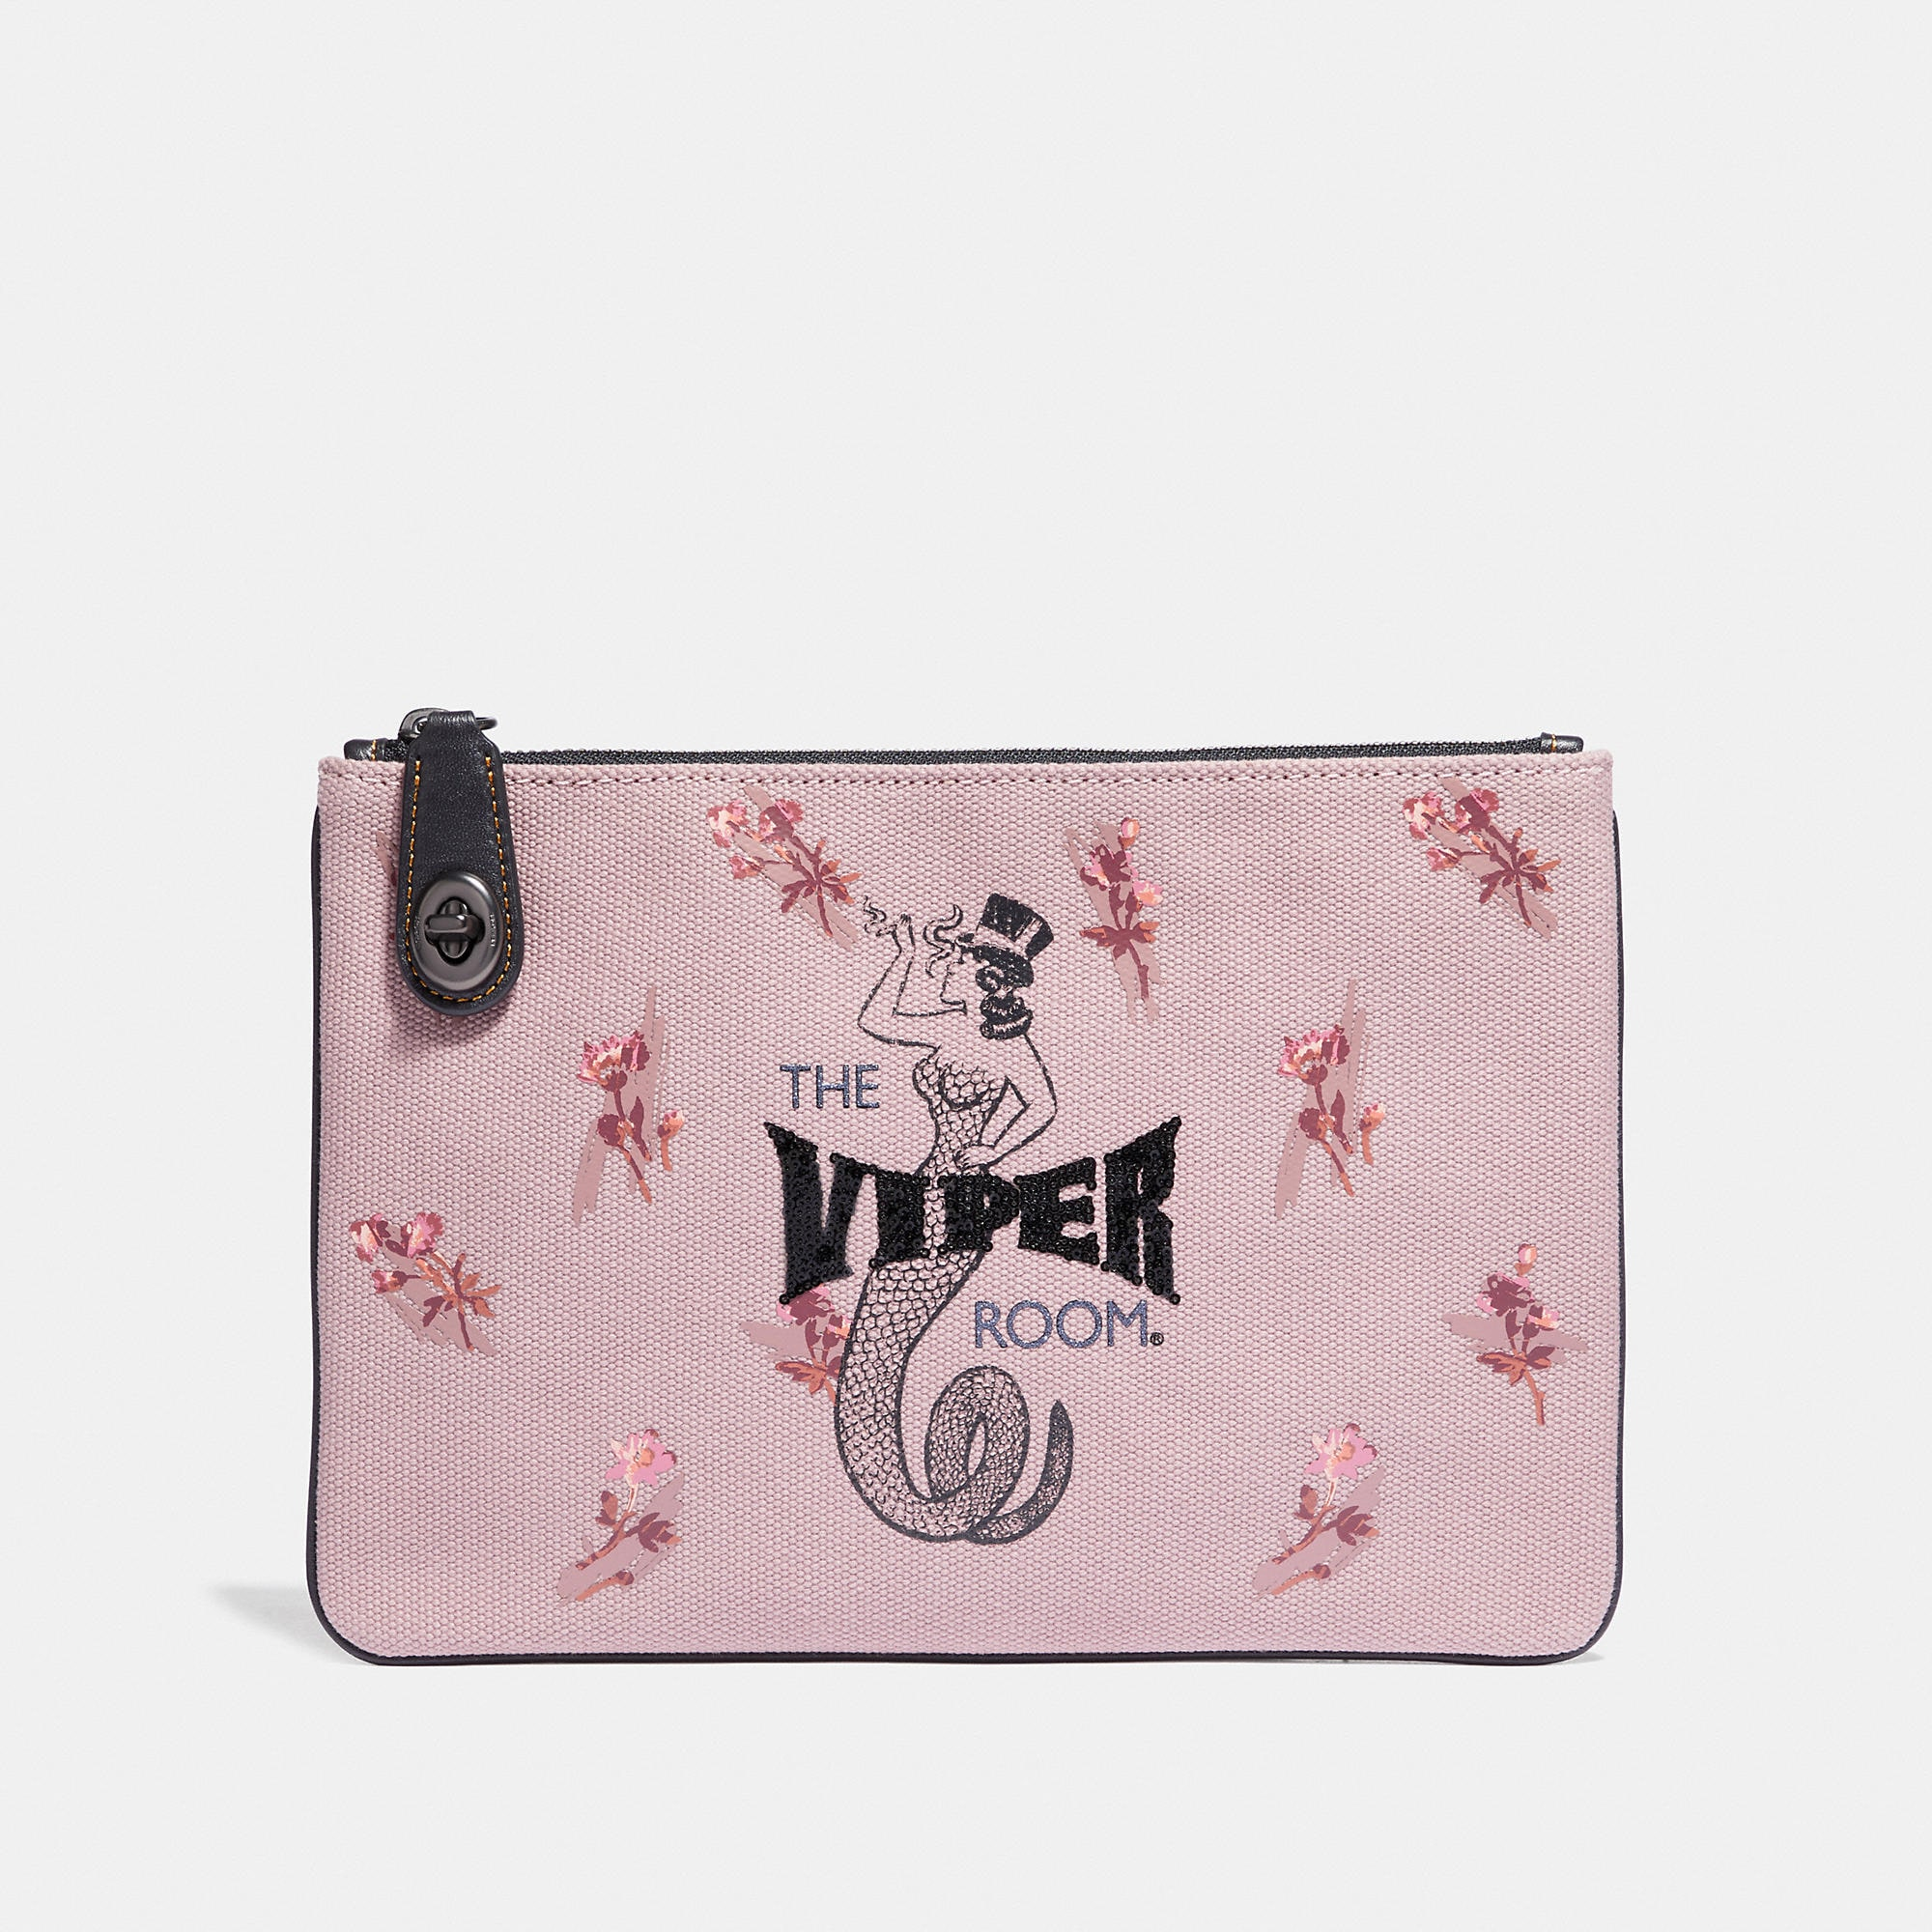 Coach Viper Room Turnlock Pouch 26